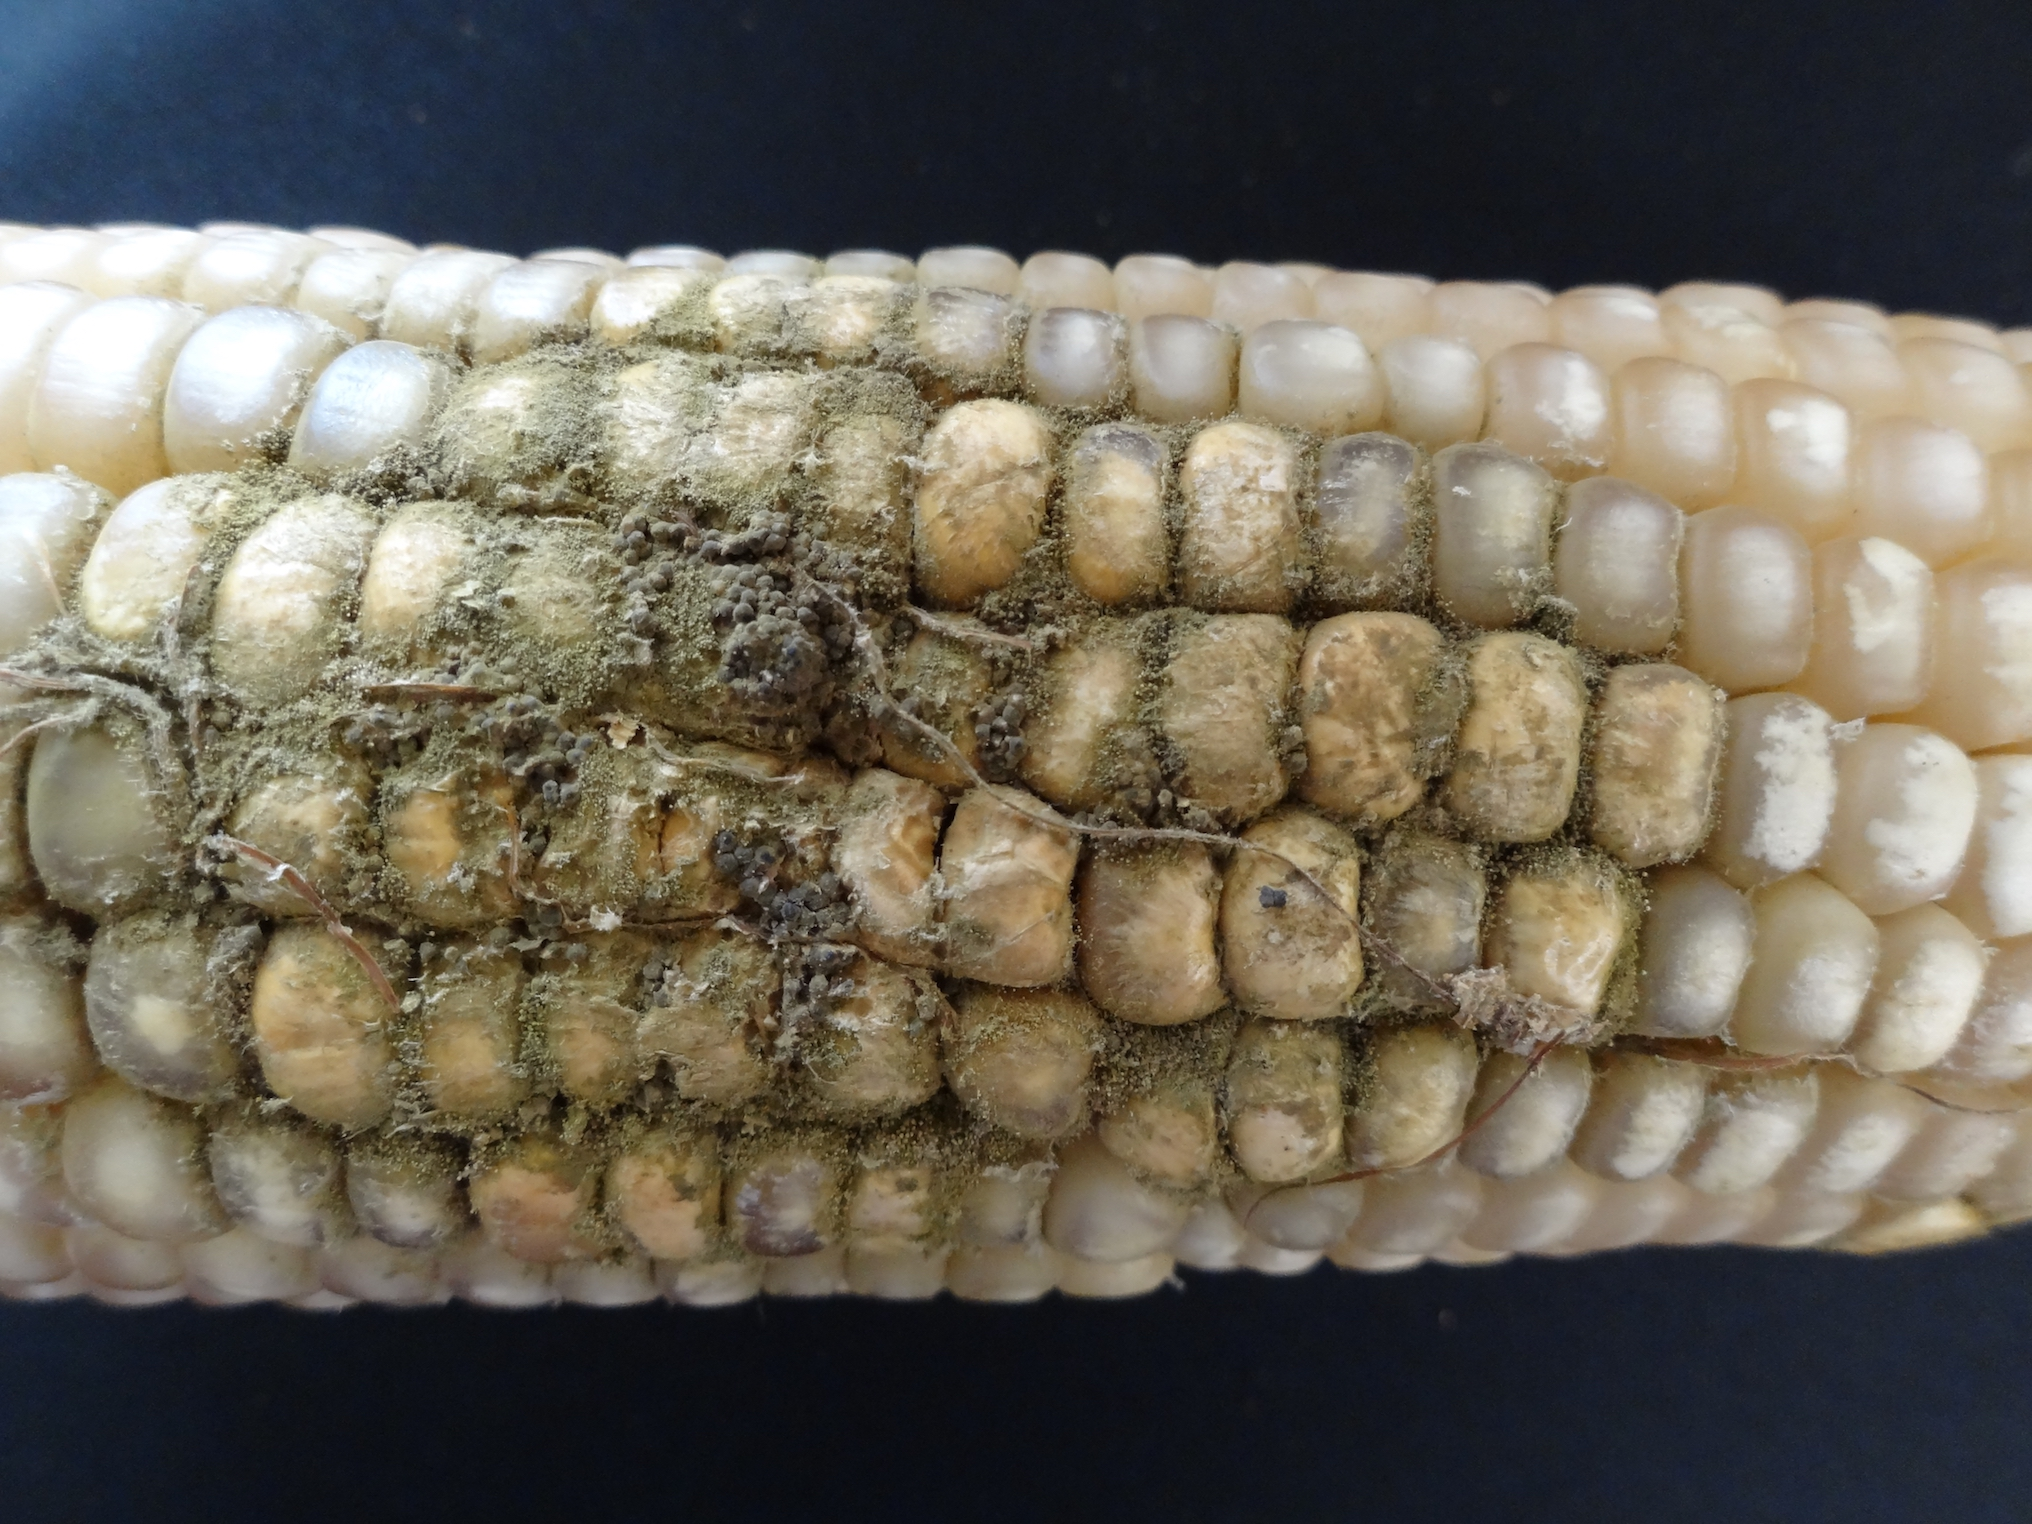 Maize ear infected with Aspergillus flavus. (Photo: Maize Pathology Laboratory/CIMMYT)